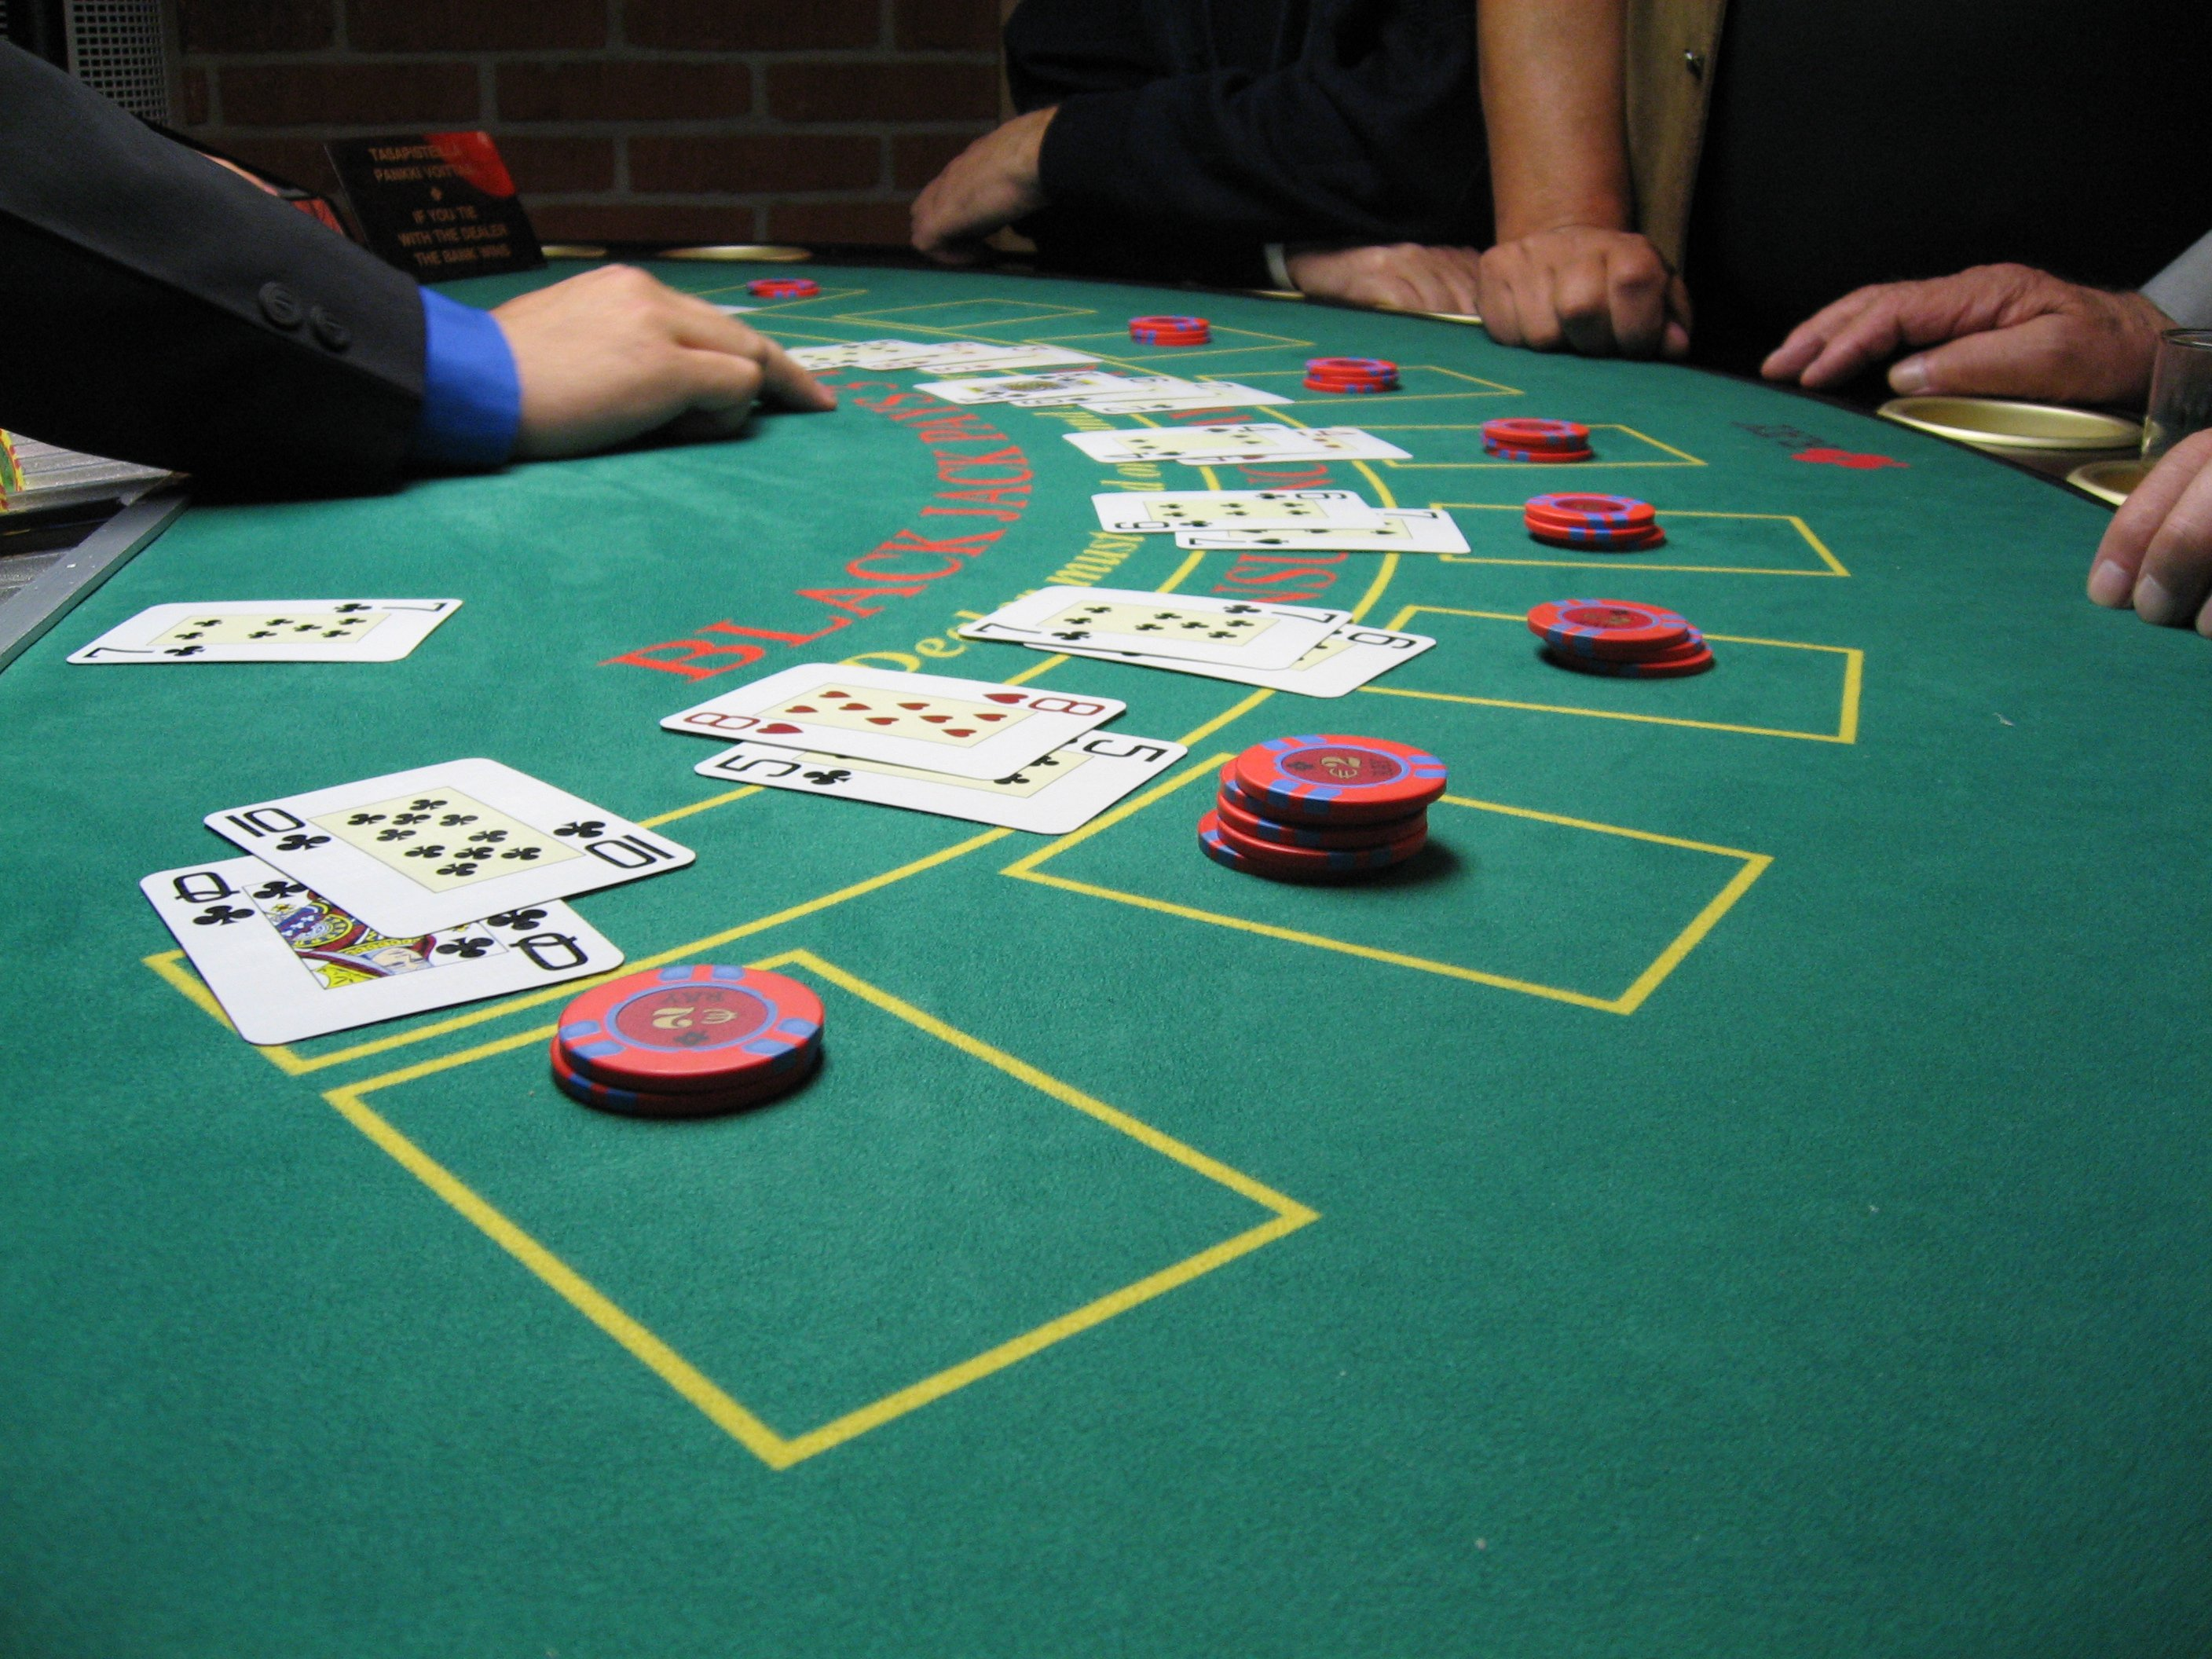 How does the casino make money on blackjack play roulette online for real money malaysia